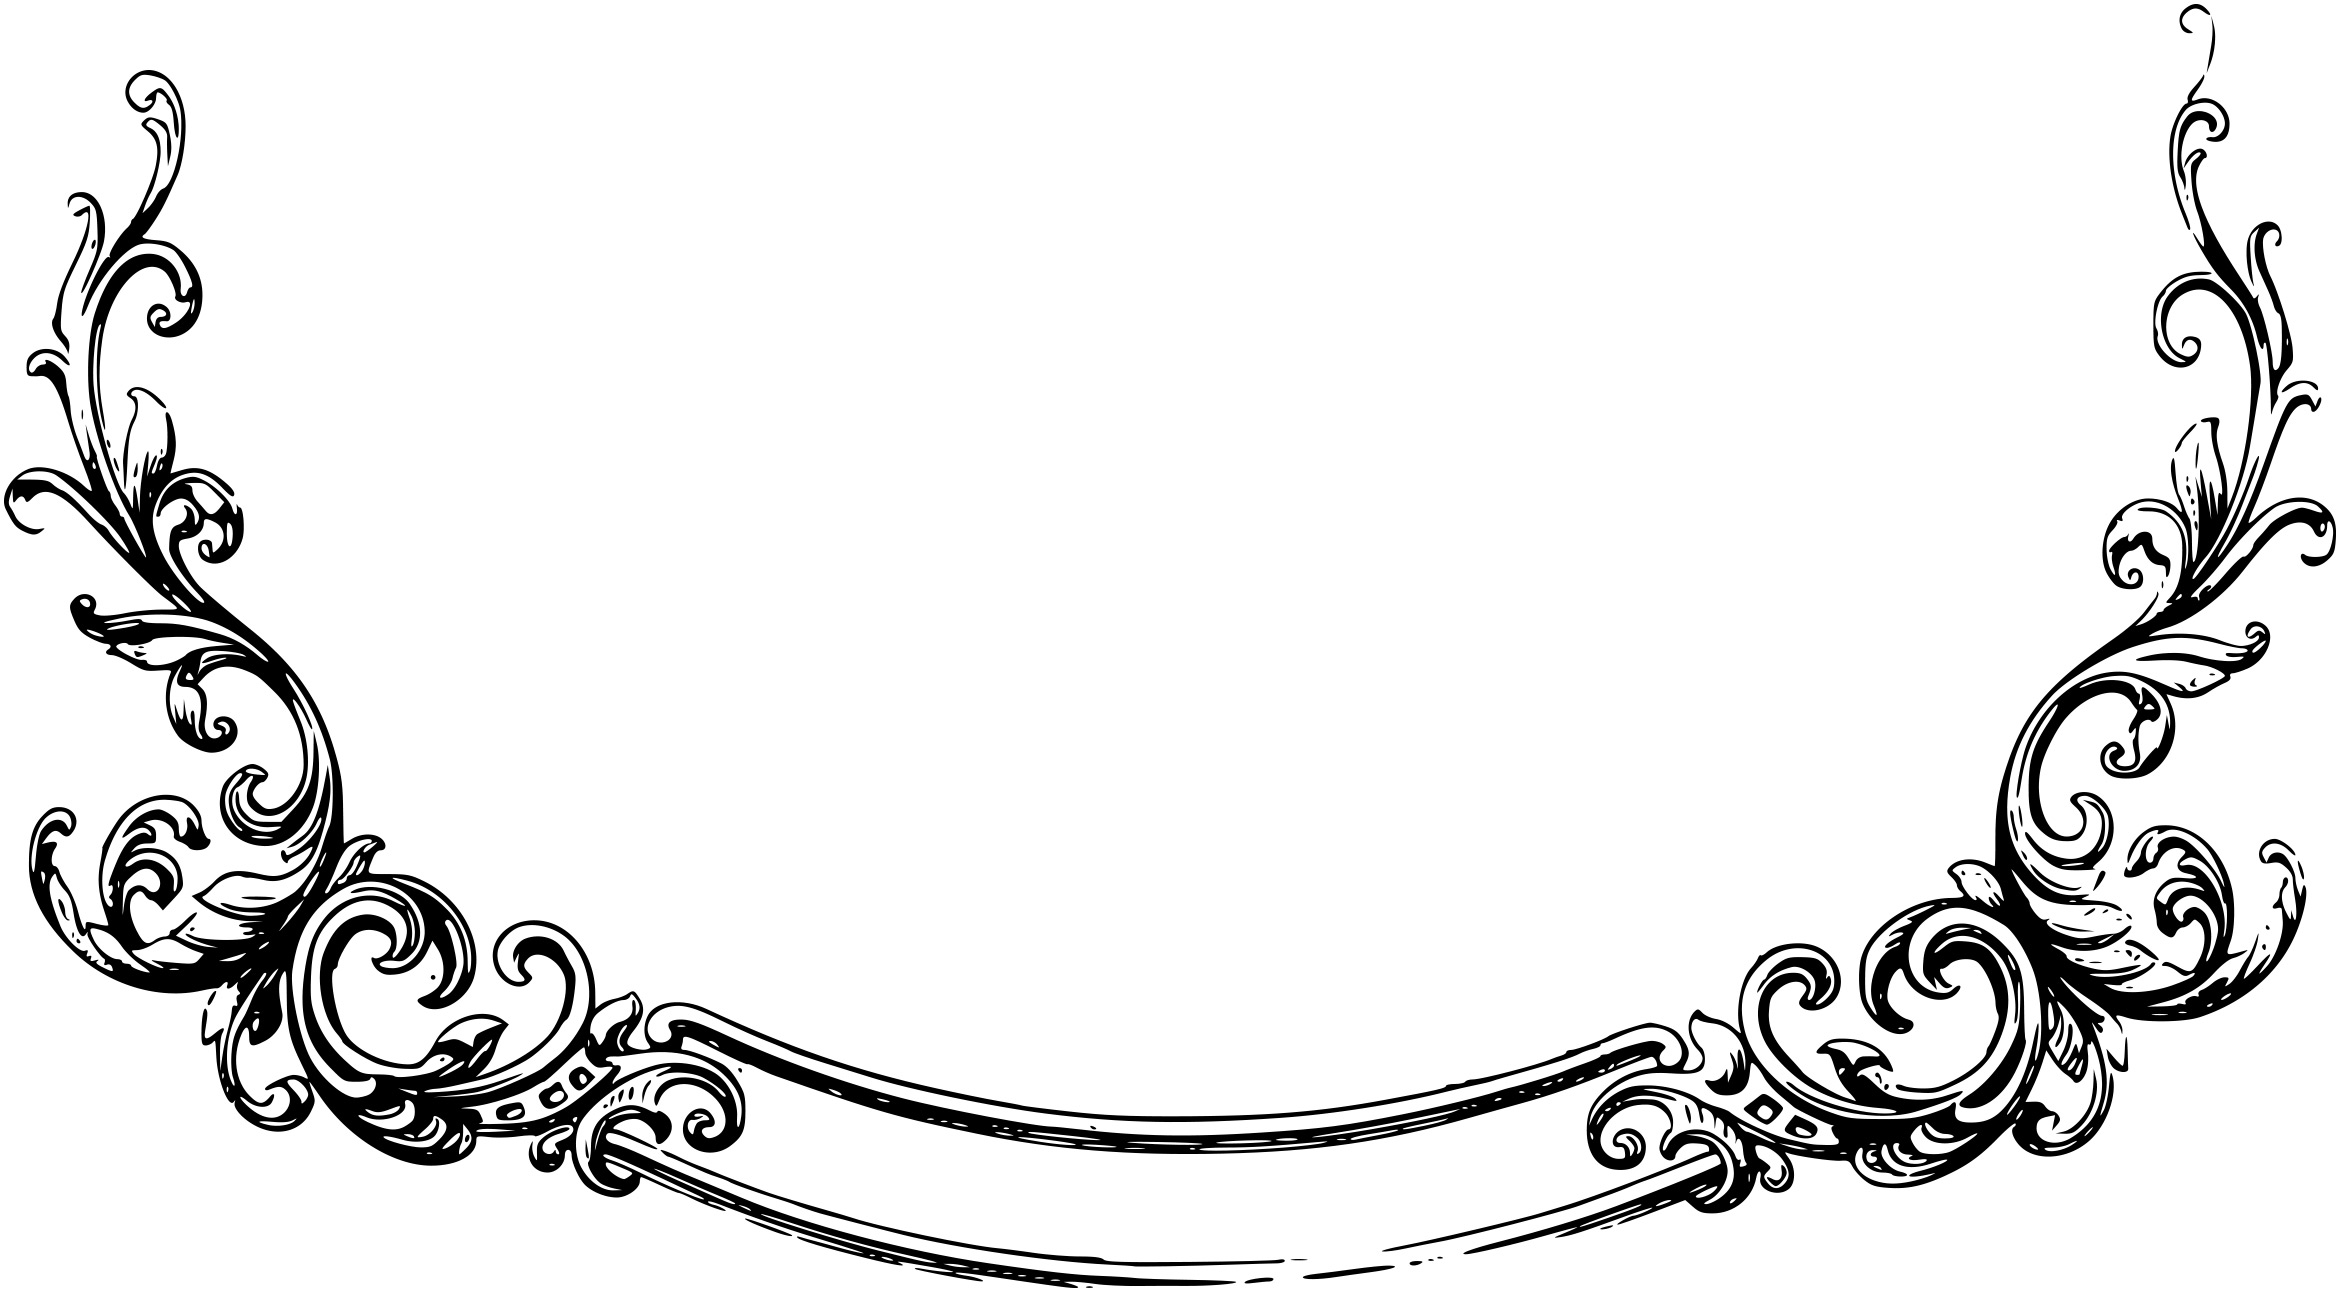 pin Frame clipart scrollwork #6 - PNG Scroll Border